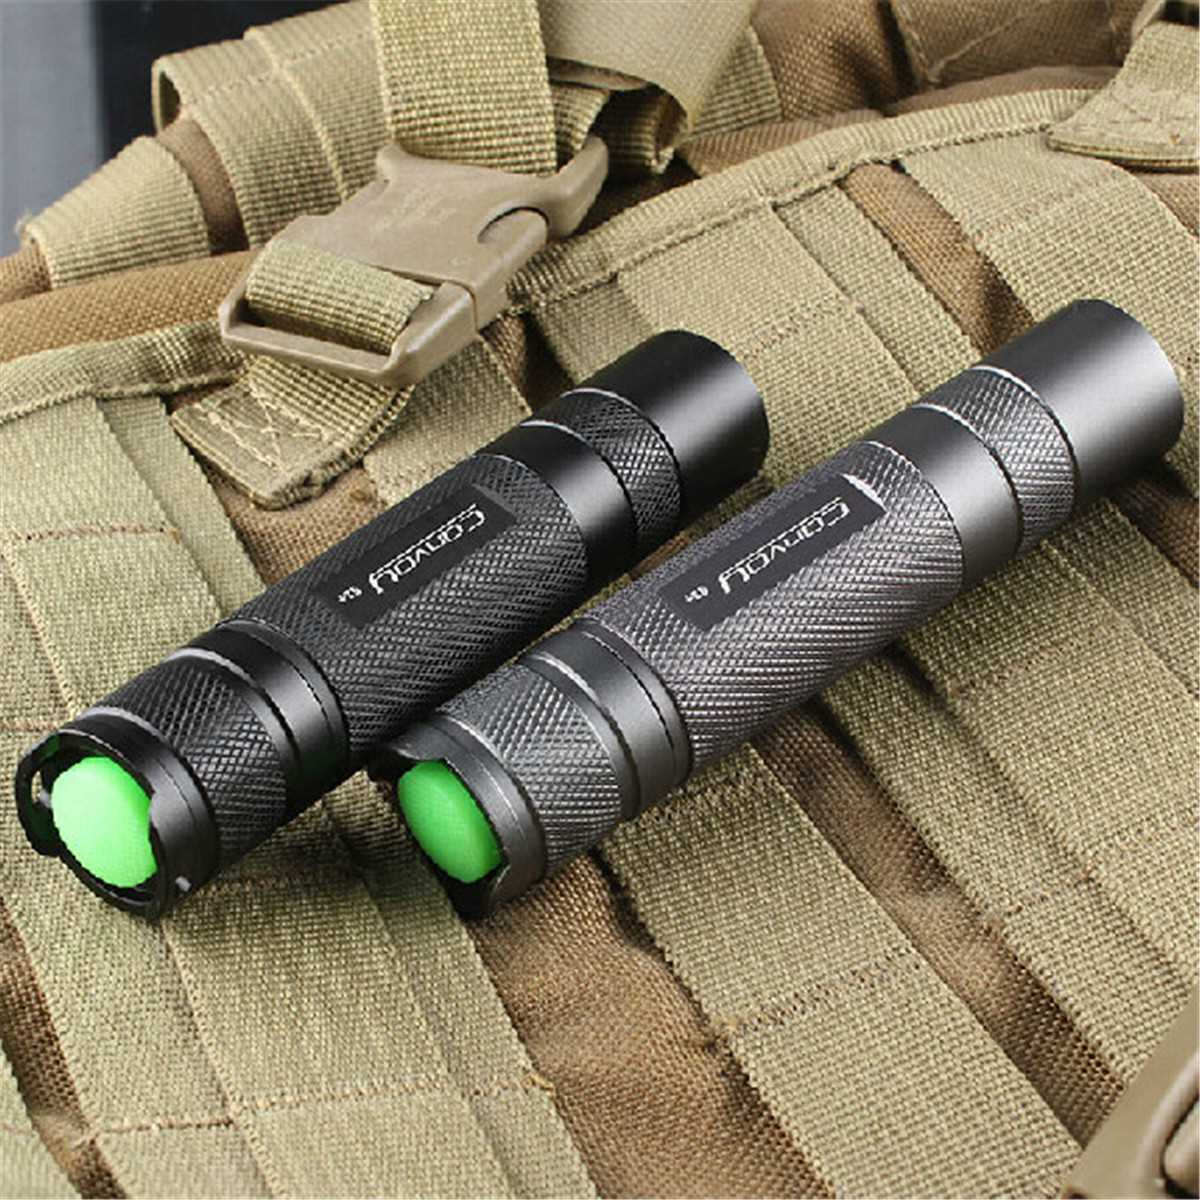 Convoy S2+Aluminum alloy Grey XM-L2 7135x8 3/5Modes EDC LED Flashlight Torch by 18650 battery For Camping Hiking фонарик convoy s5 xml2 u2 1a 7135 3 3 5